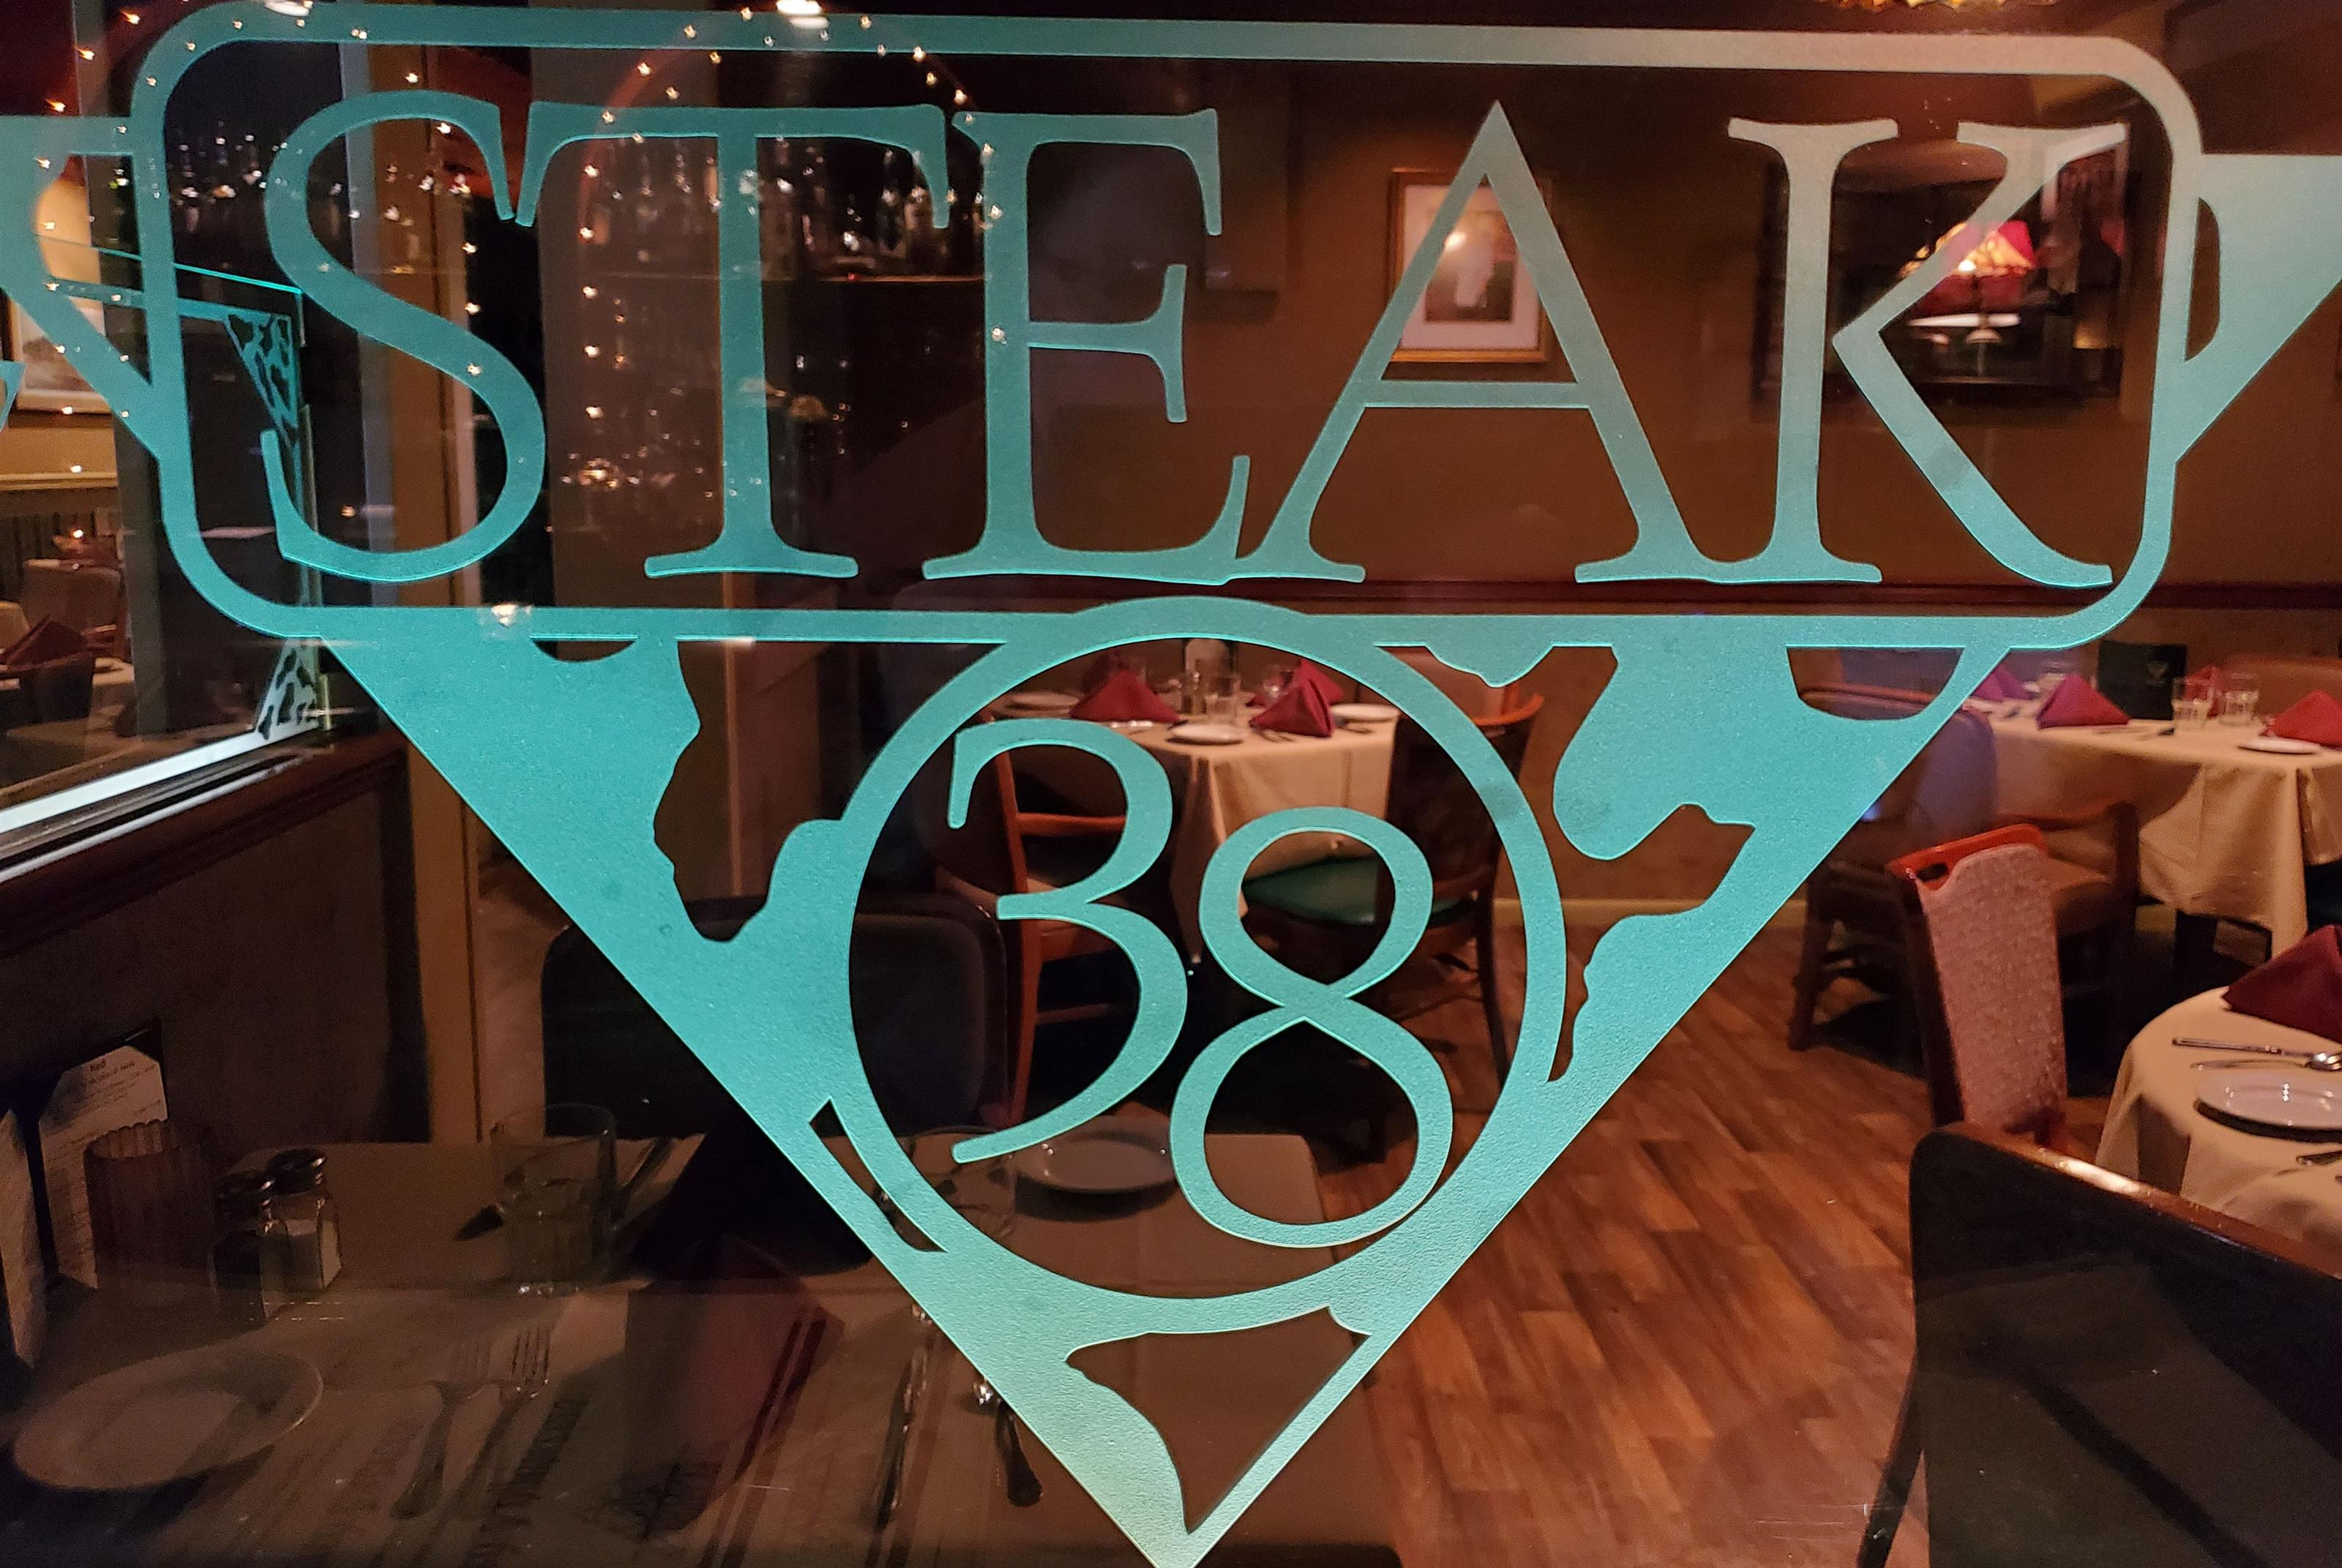 Window with Steak 38 decal